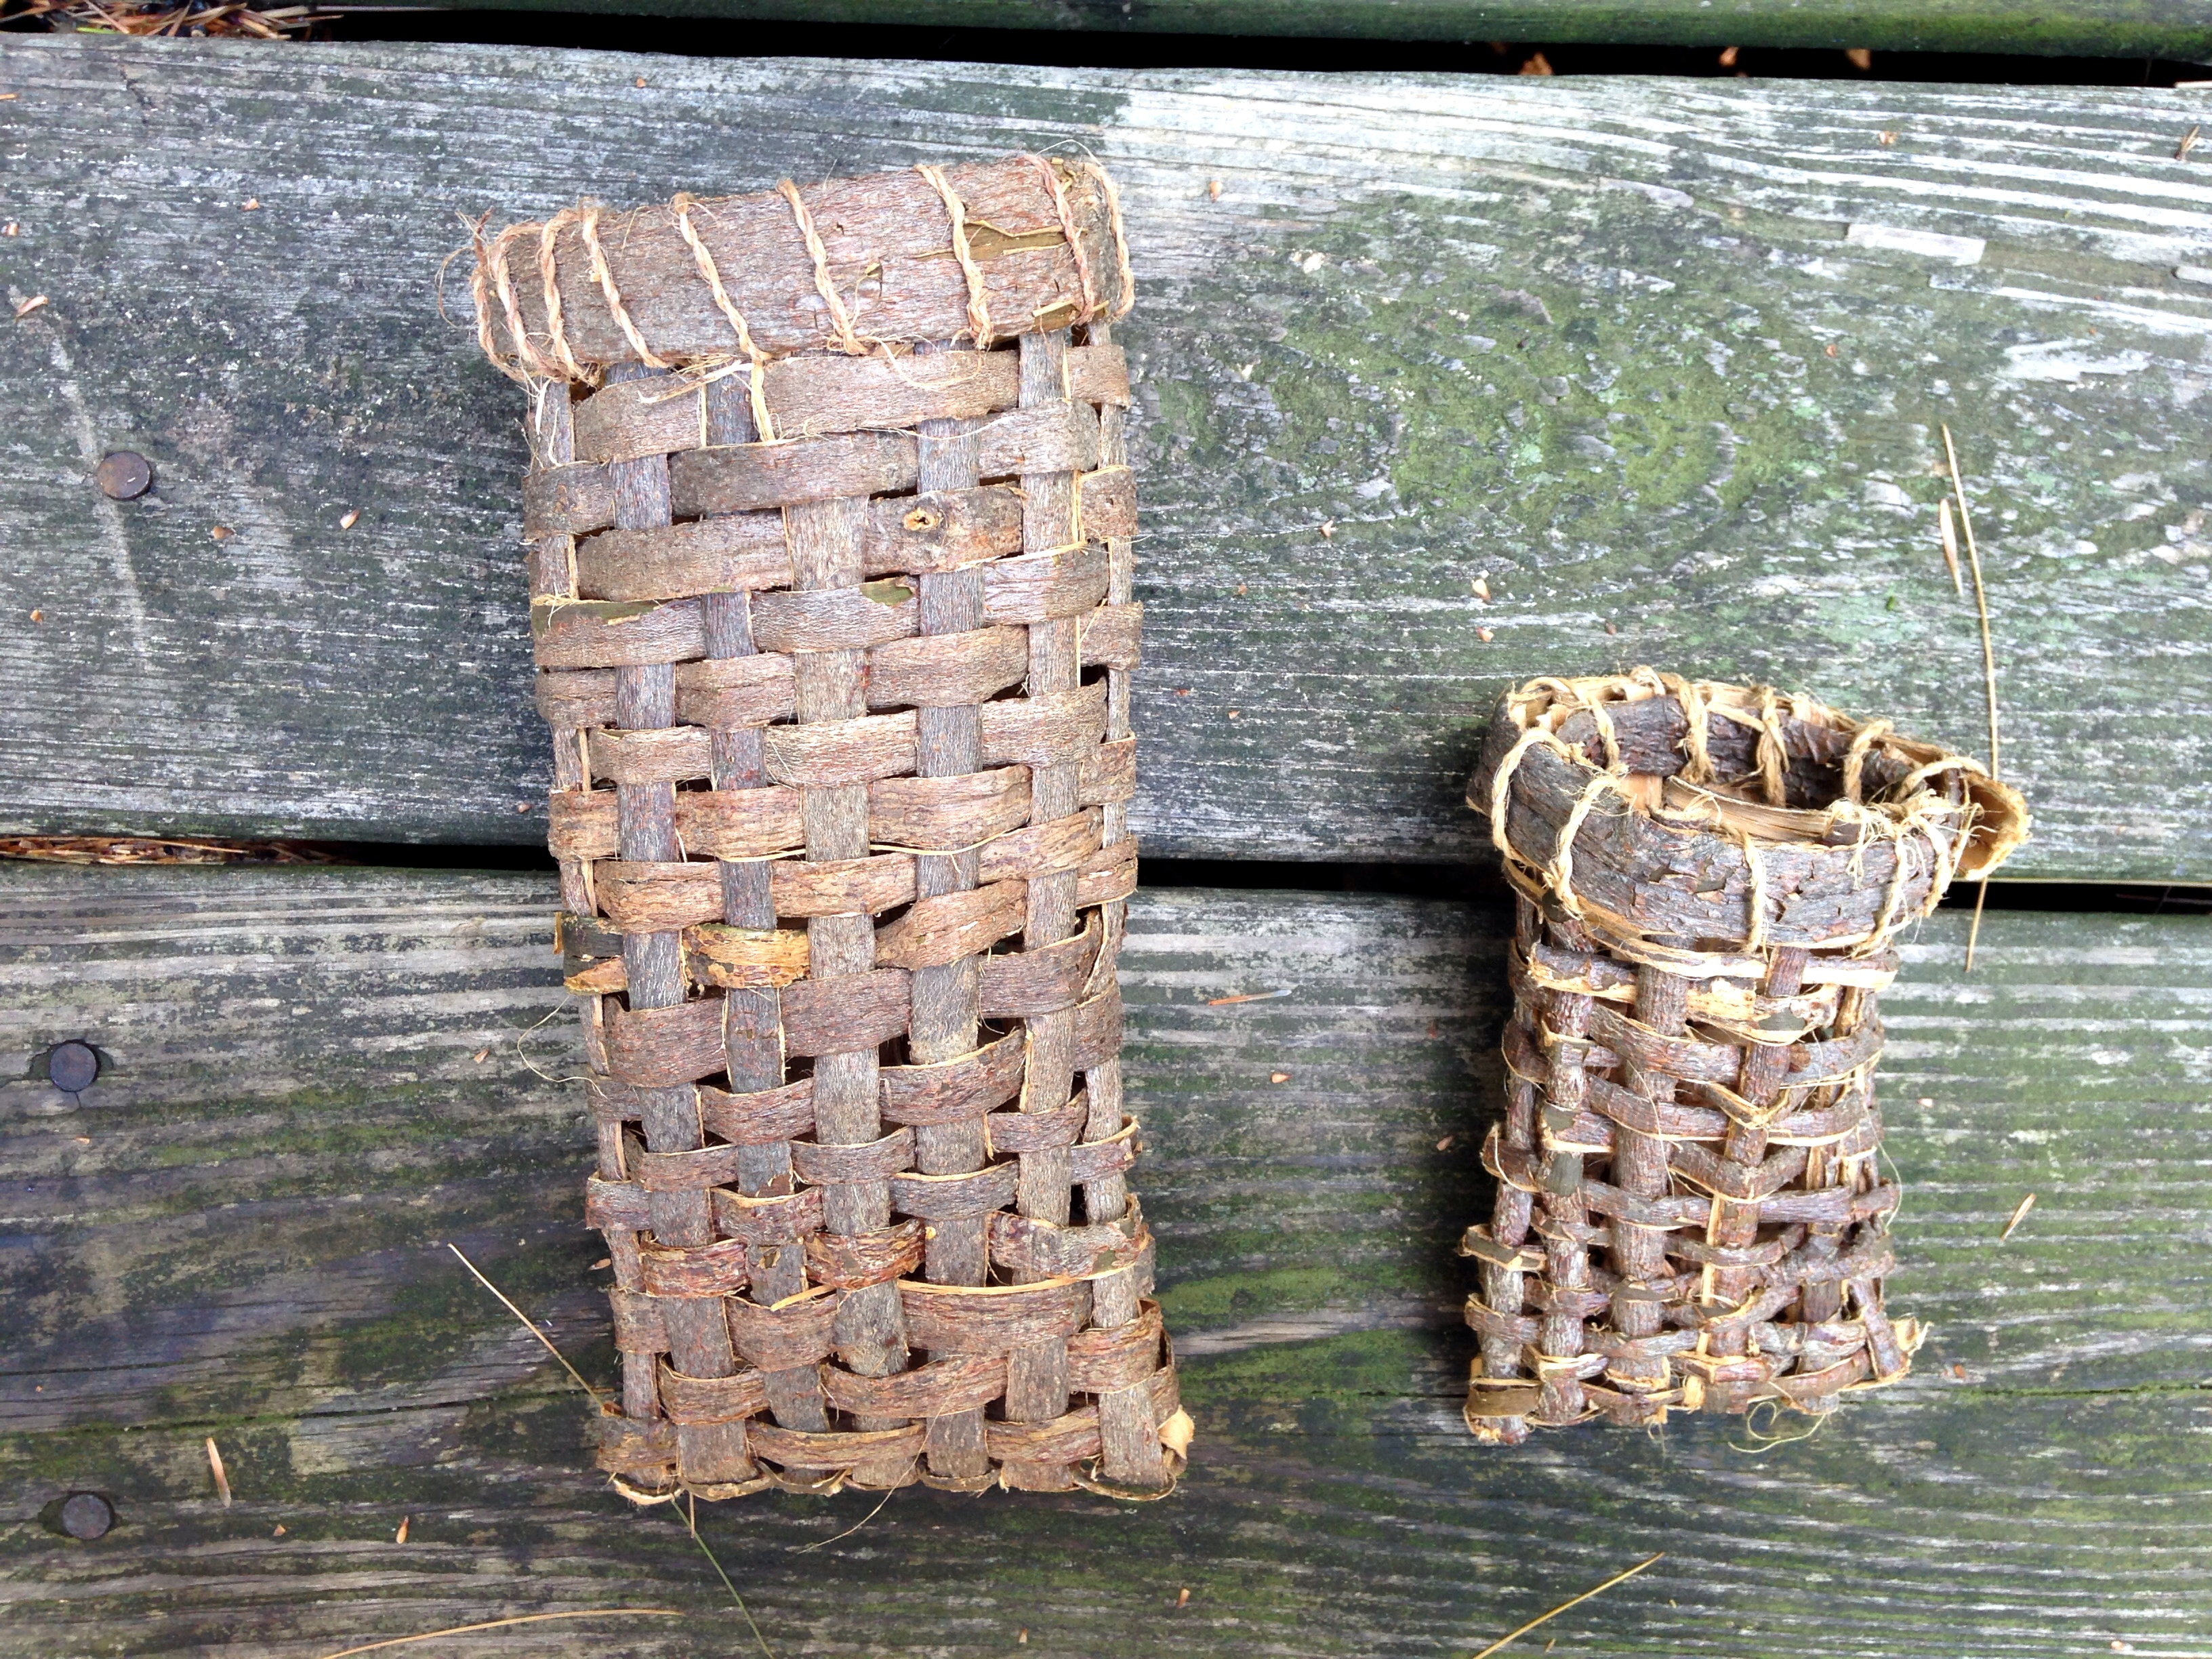 Processing Basswood Bark For Making Cordage And Baskets